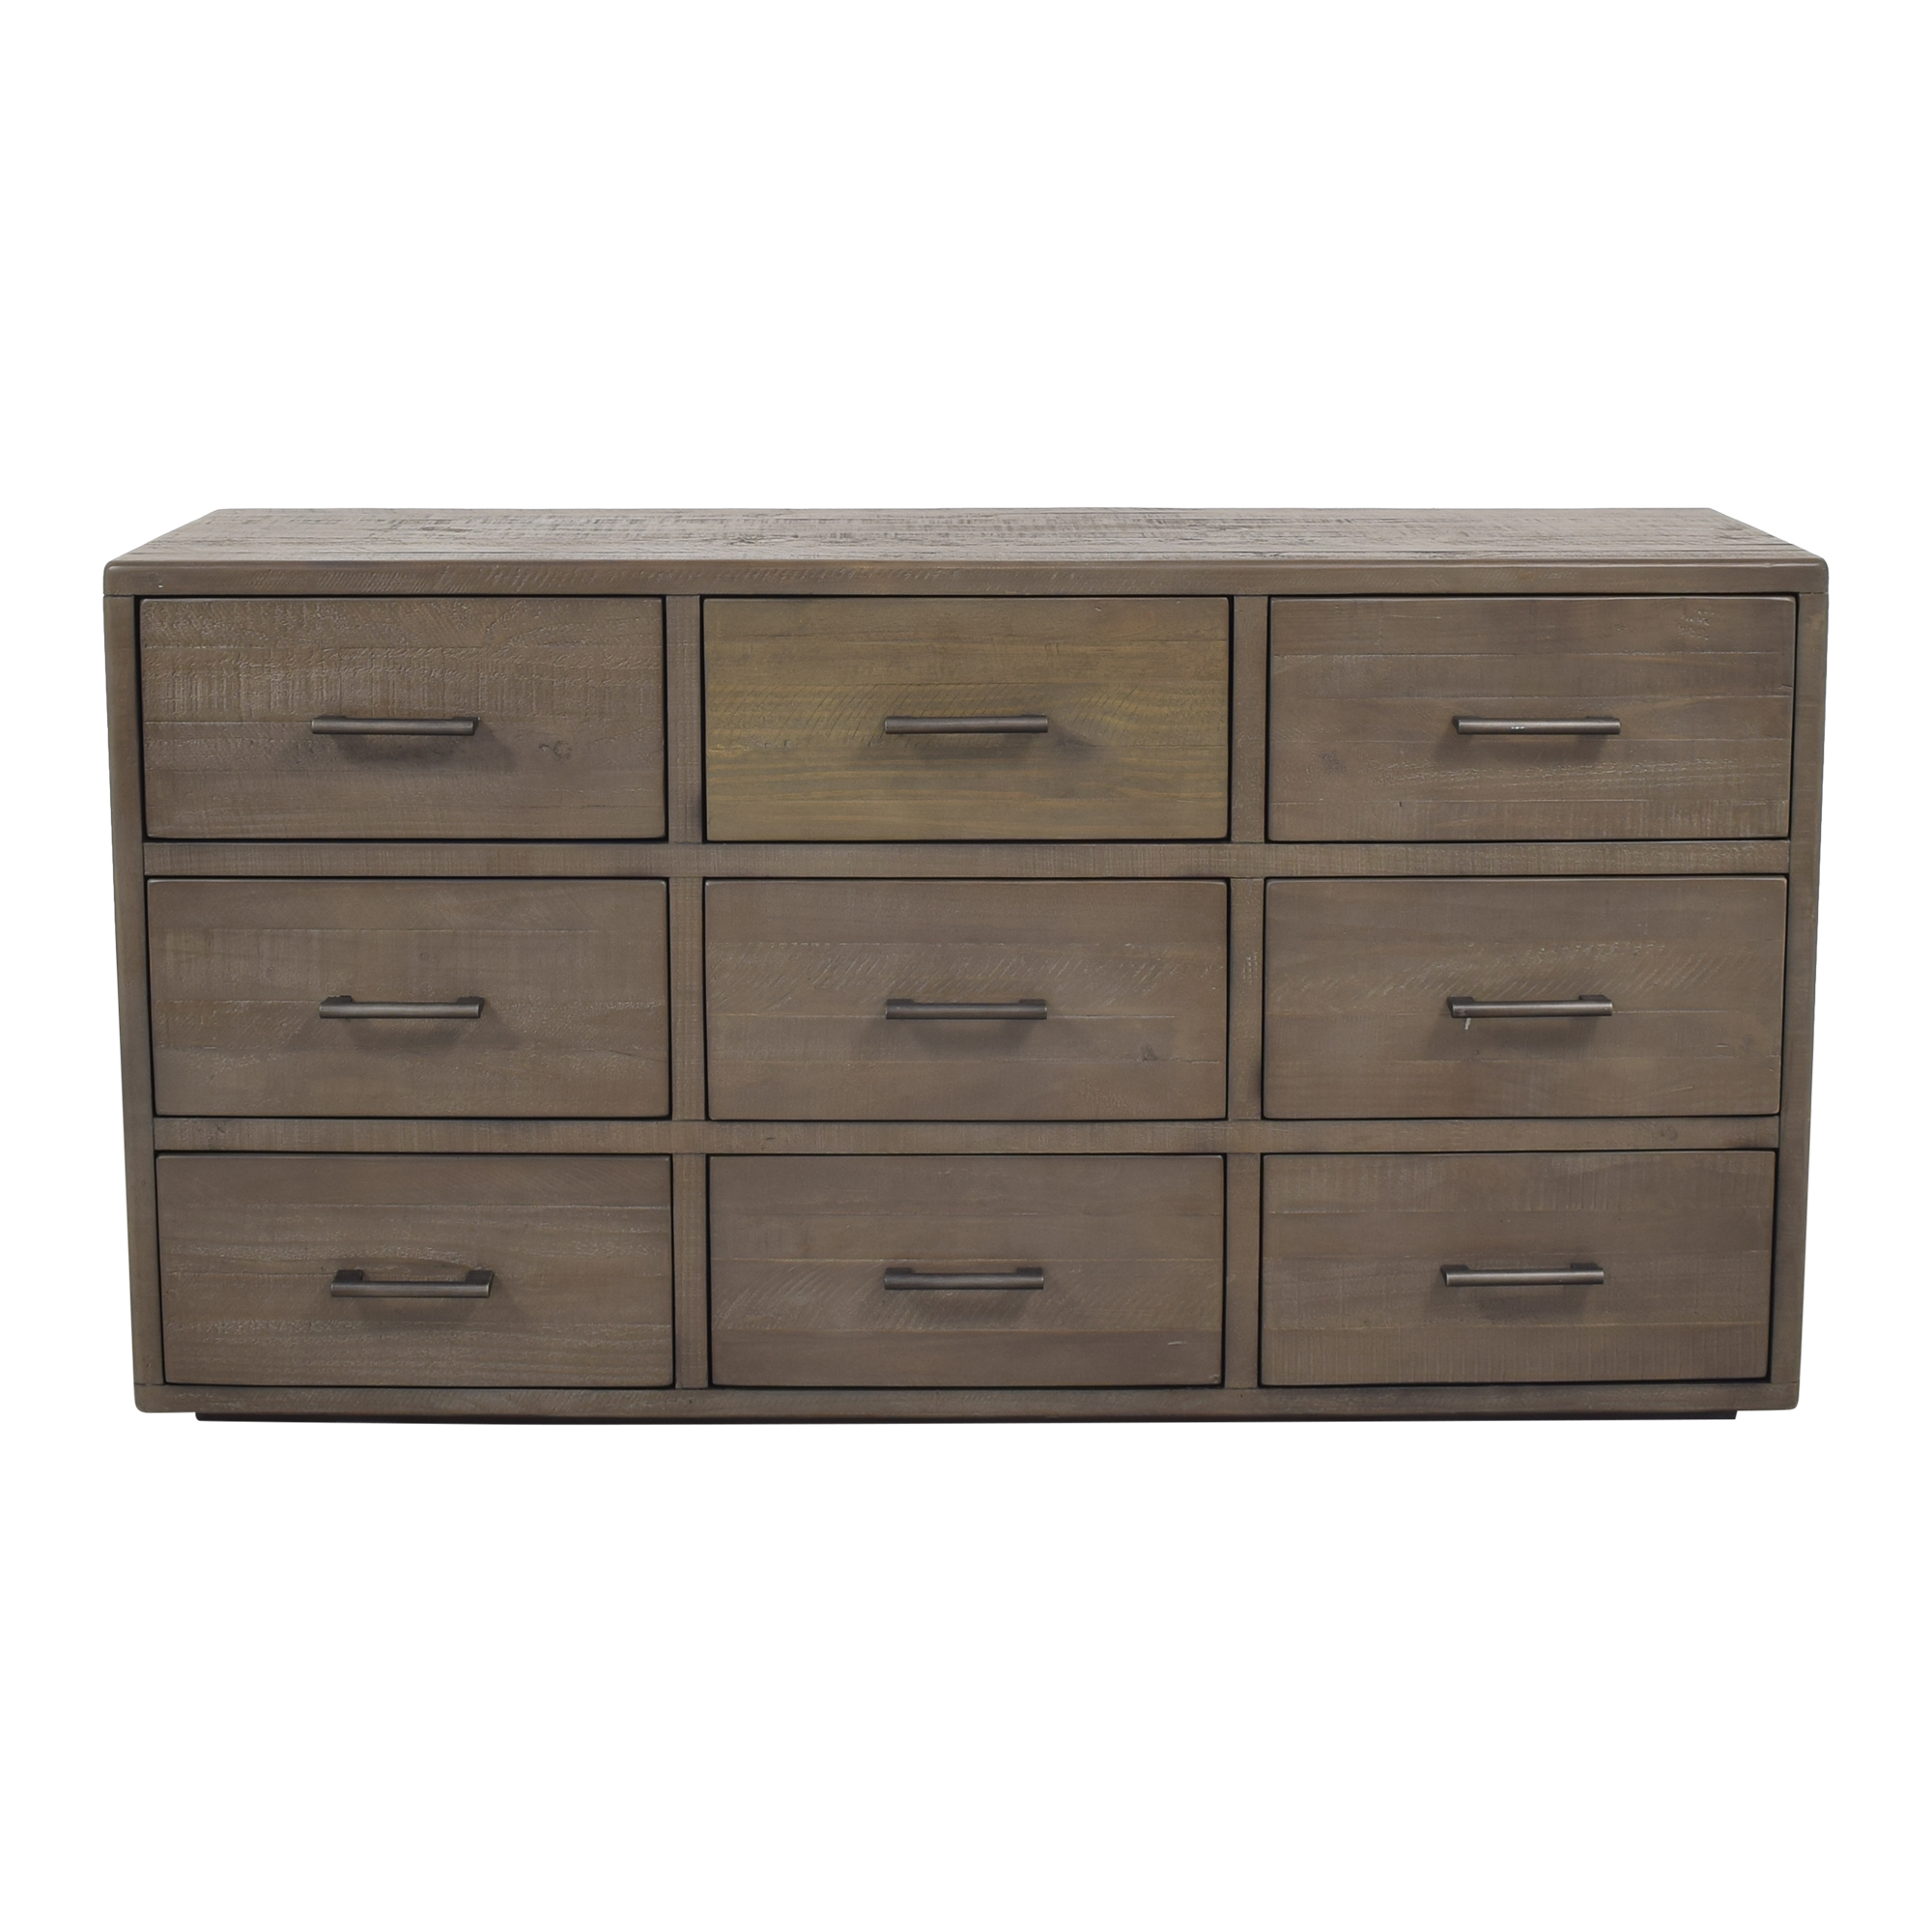 Macy's Macy's Brandon 9 Drawer Dresser price